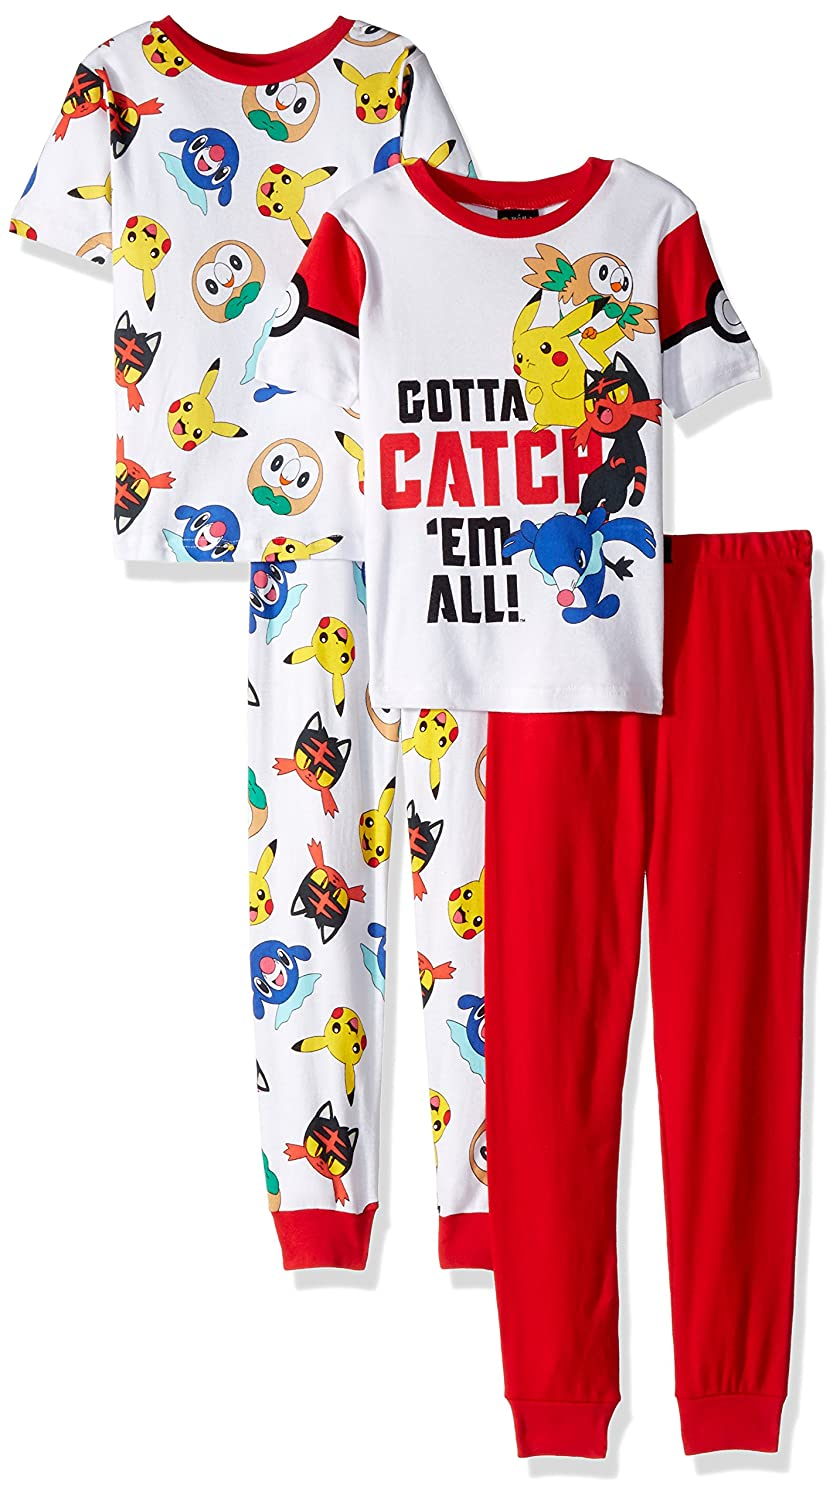 Pokemon Boys Catch 'em All 4-Piece Cotton Pajama Set 21PK126BSLZA-P6